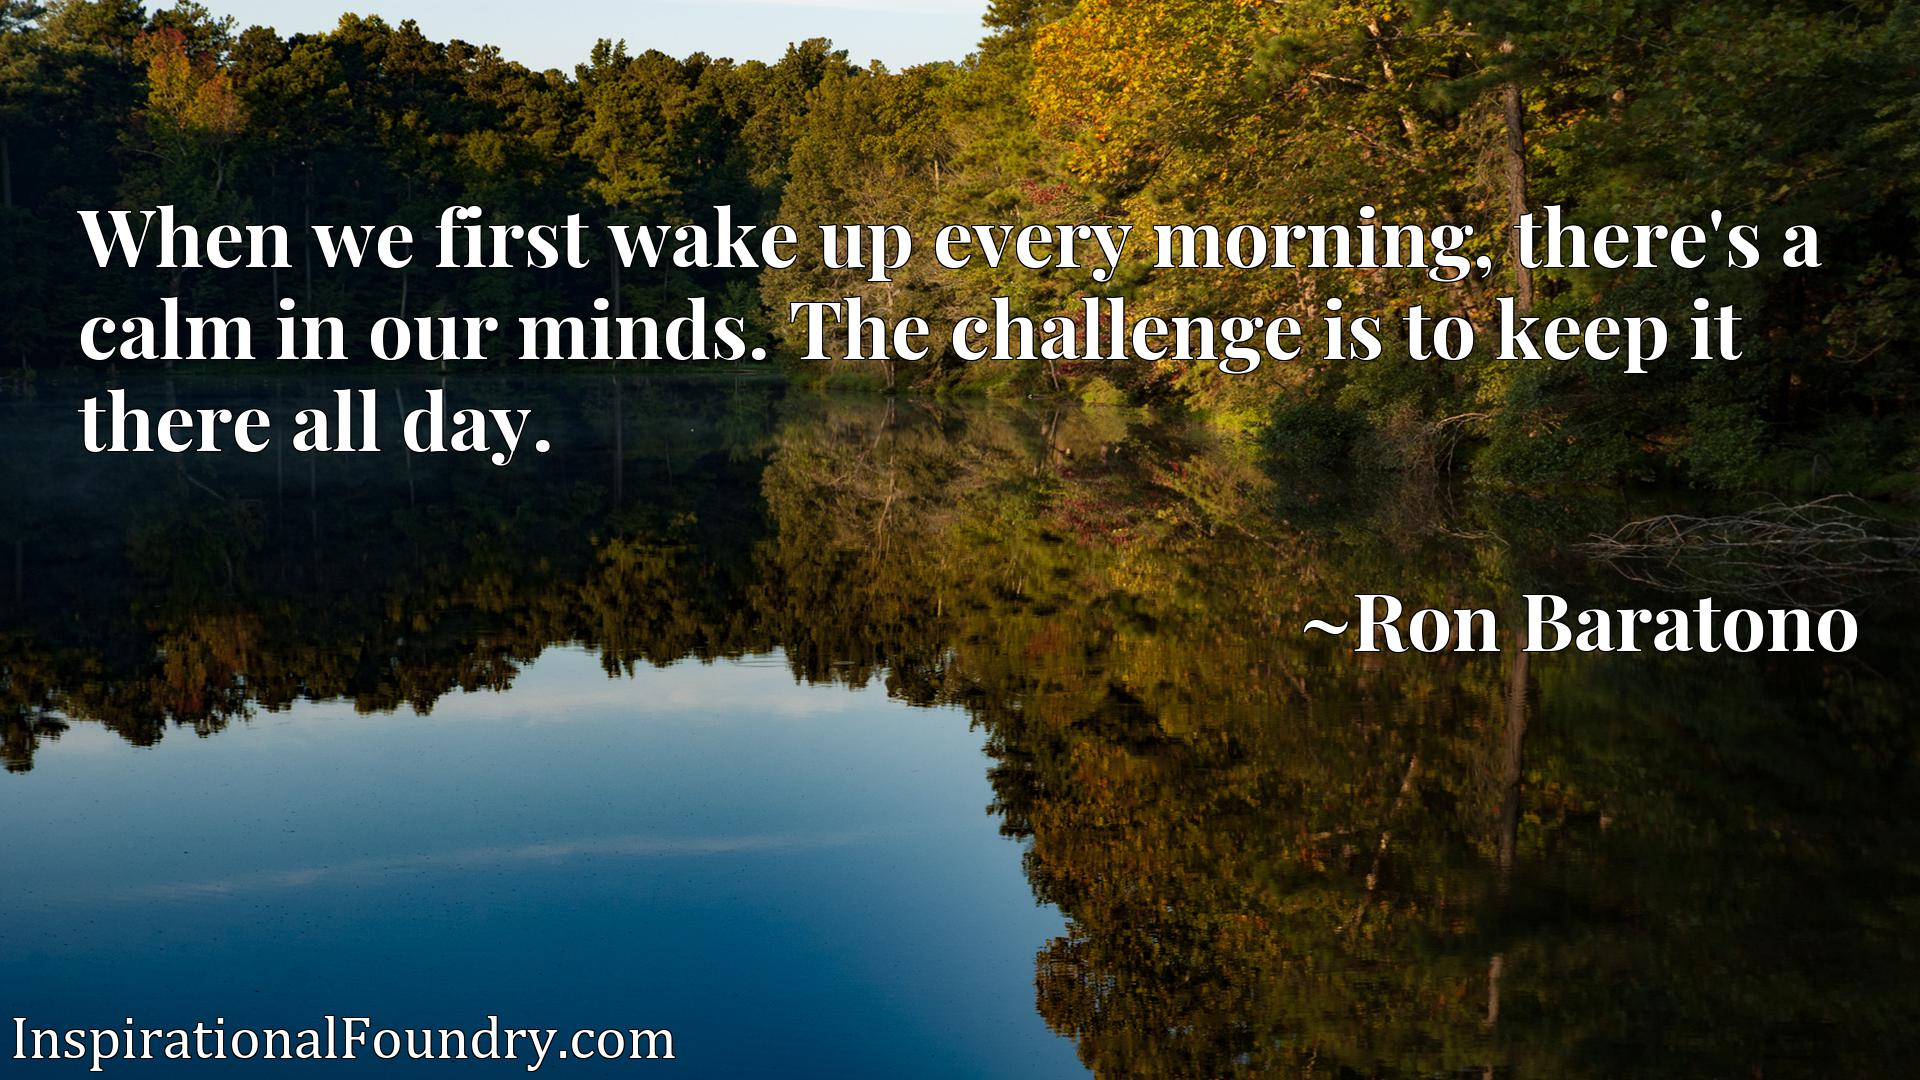 When we first wake up every morning, there's a calm in our minds. The challenge is to keep it there all day.